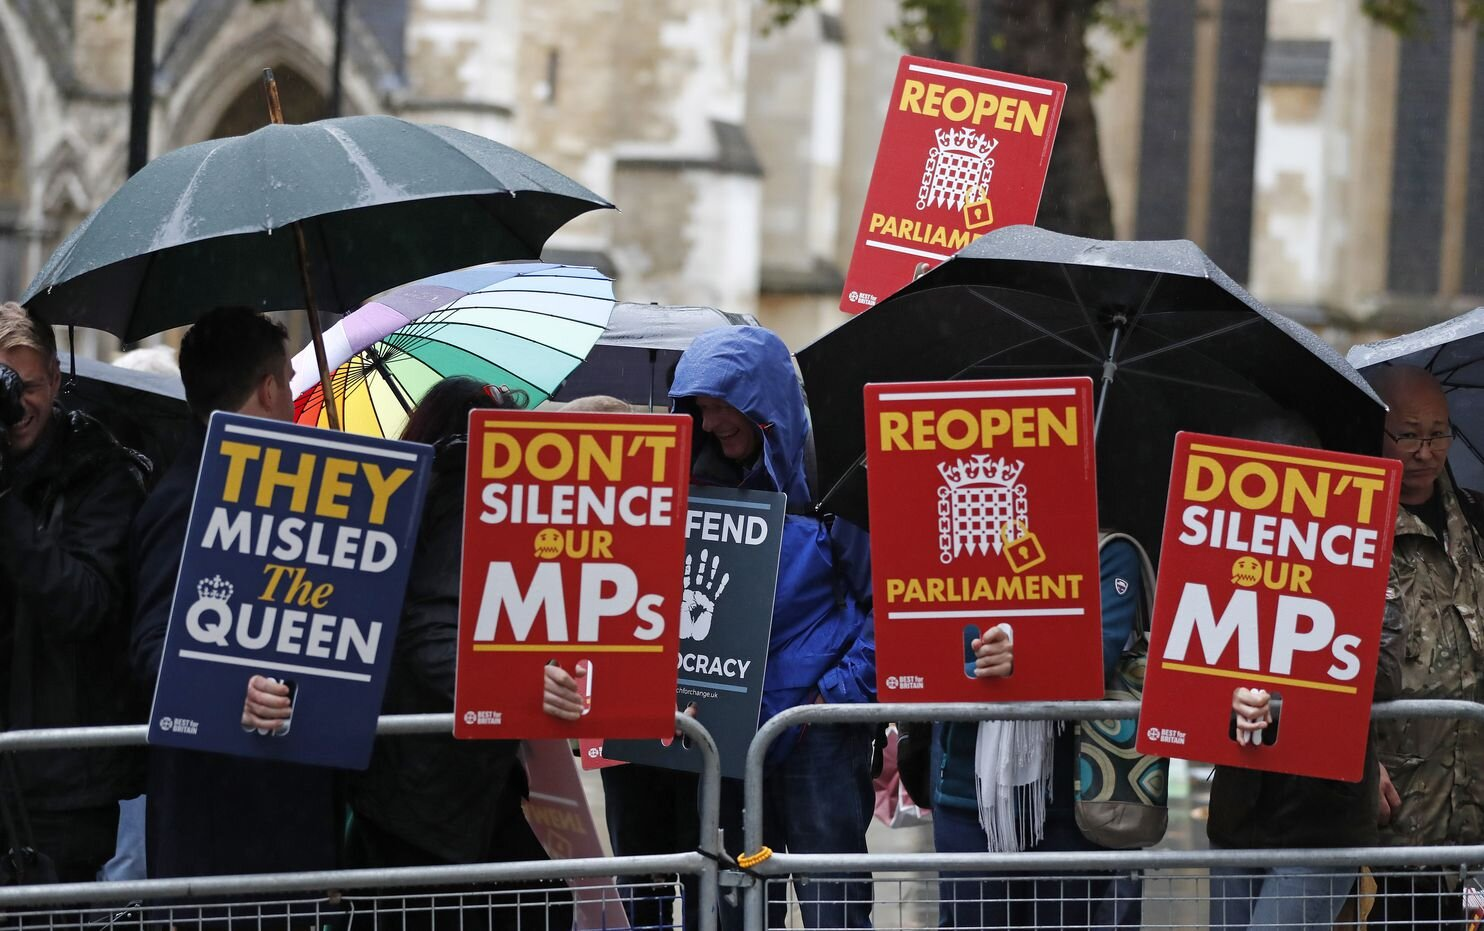 Anti-Brexit supporters gather in the rain outside the Supreme Court in London, Sept. 24, 2019. (Frank Augstein/AP)